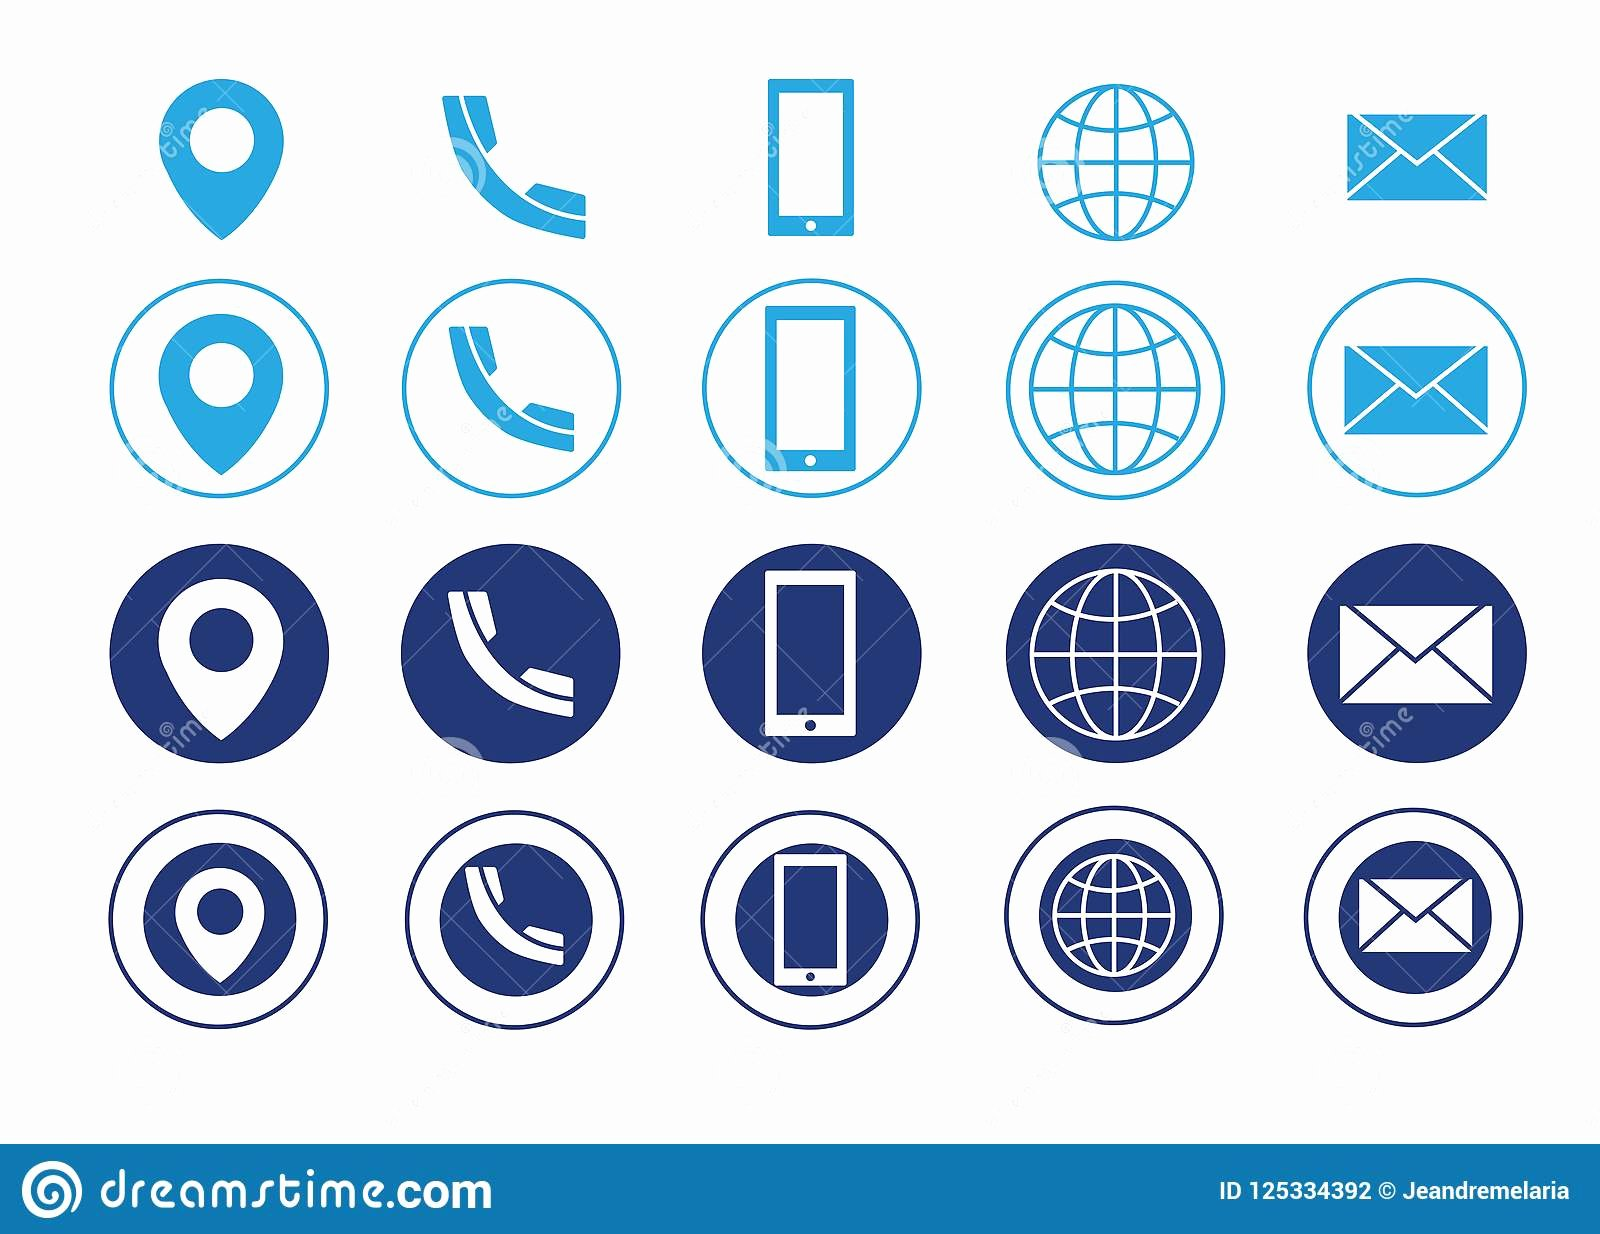 Icon for Business Cards Elegant Vector Business Card Contact Information Icons Stock Vector Illustration Of Address Telephone